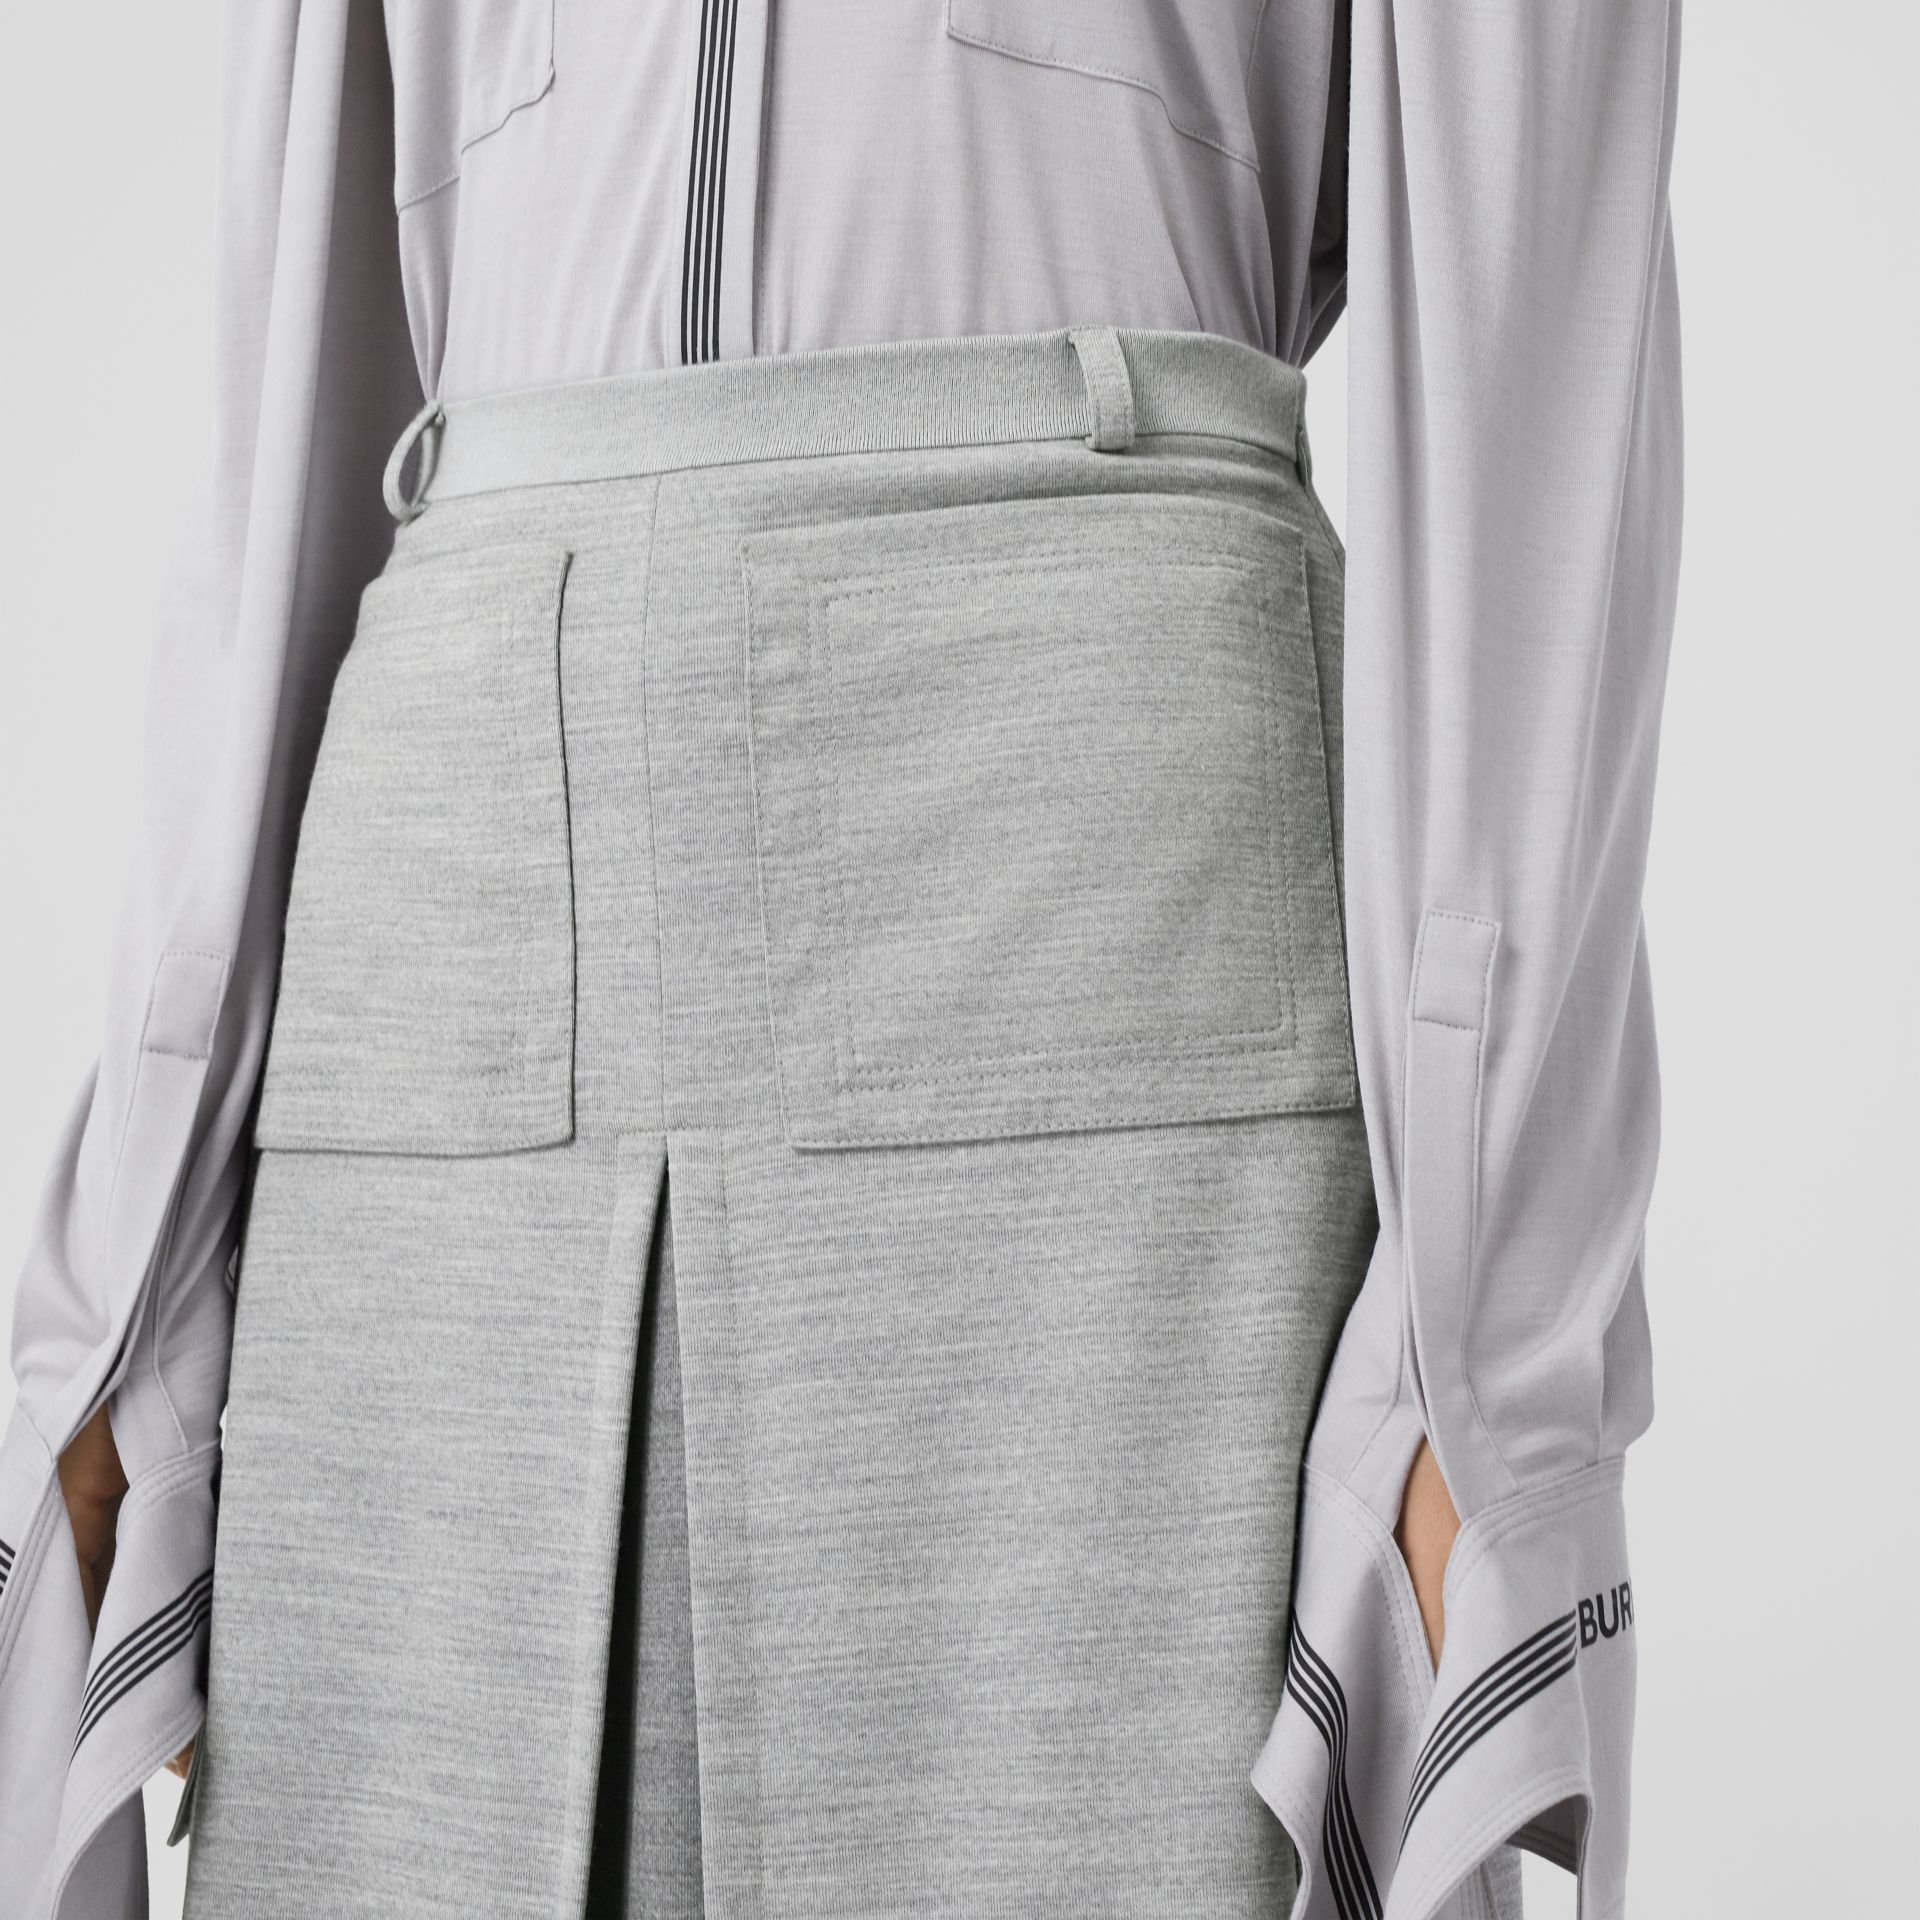 Box-pleat Detail Technical Wool Jersey A-line Skirt in Cloud Grey - Women | Burberry - gallery image 1